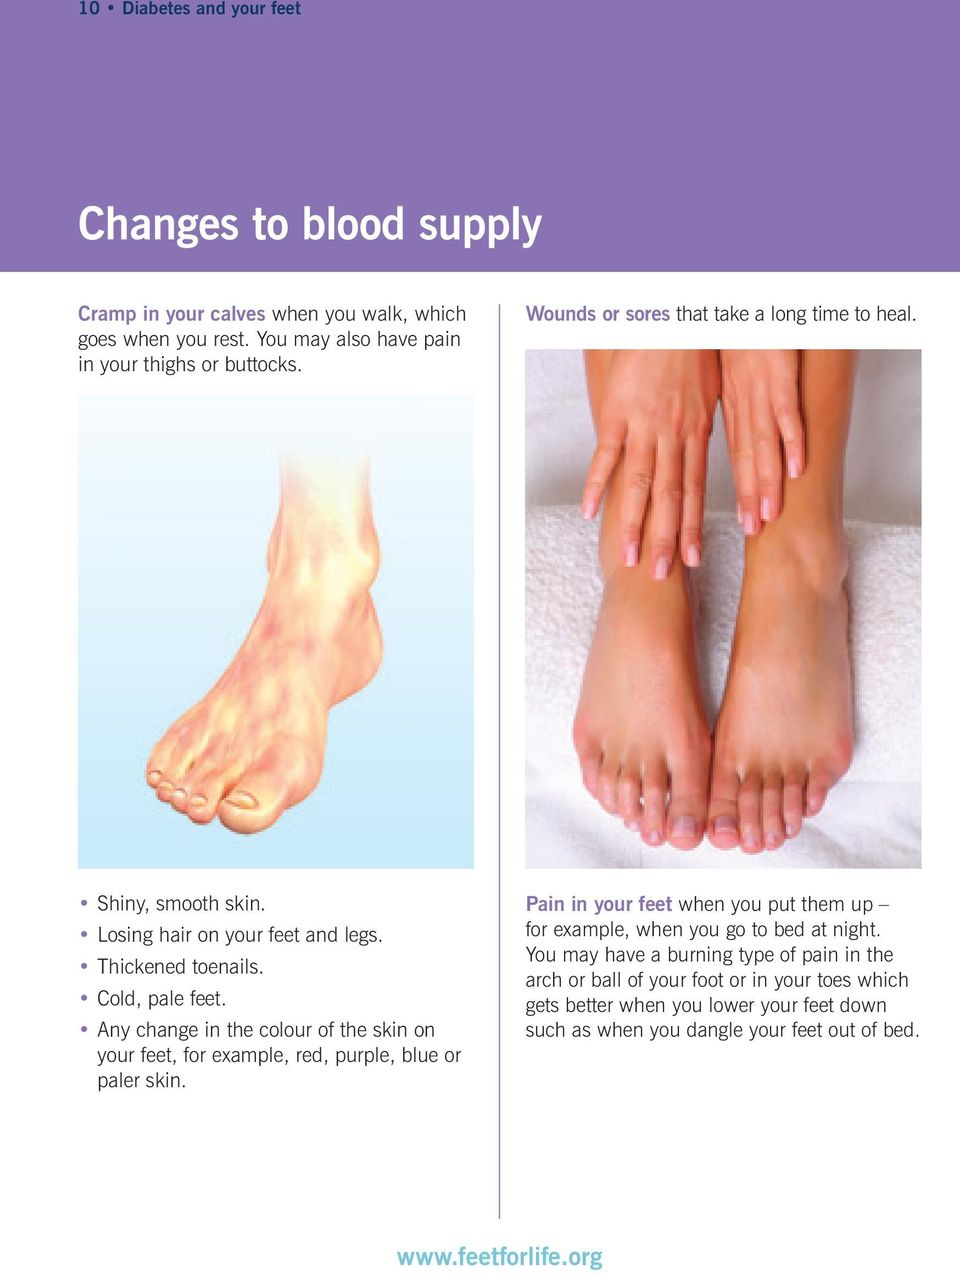 Any change in the colour of the skin on your feet, for example, red, purple, blue or paler skin.